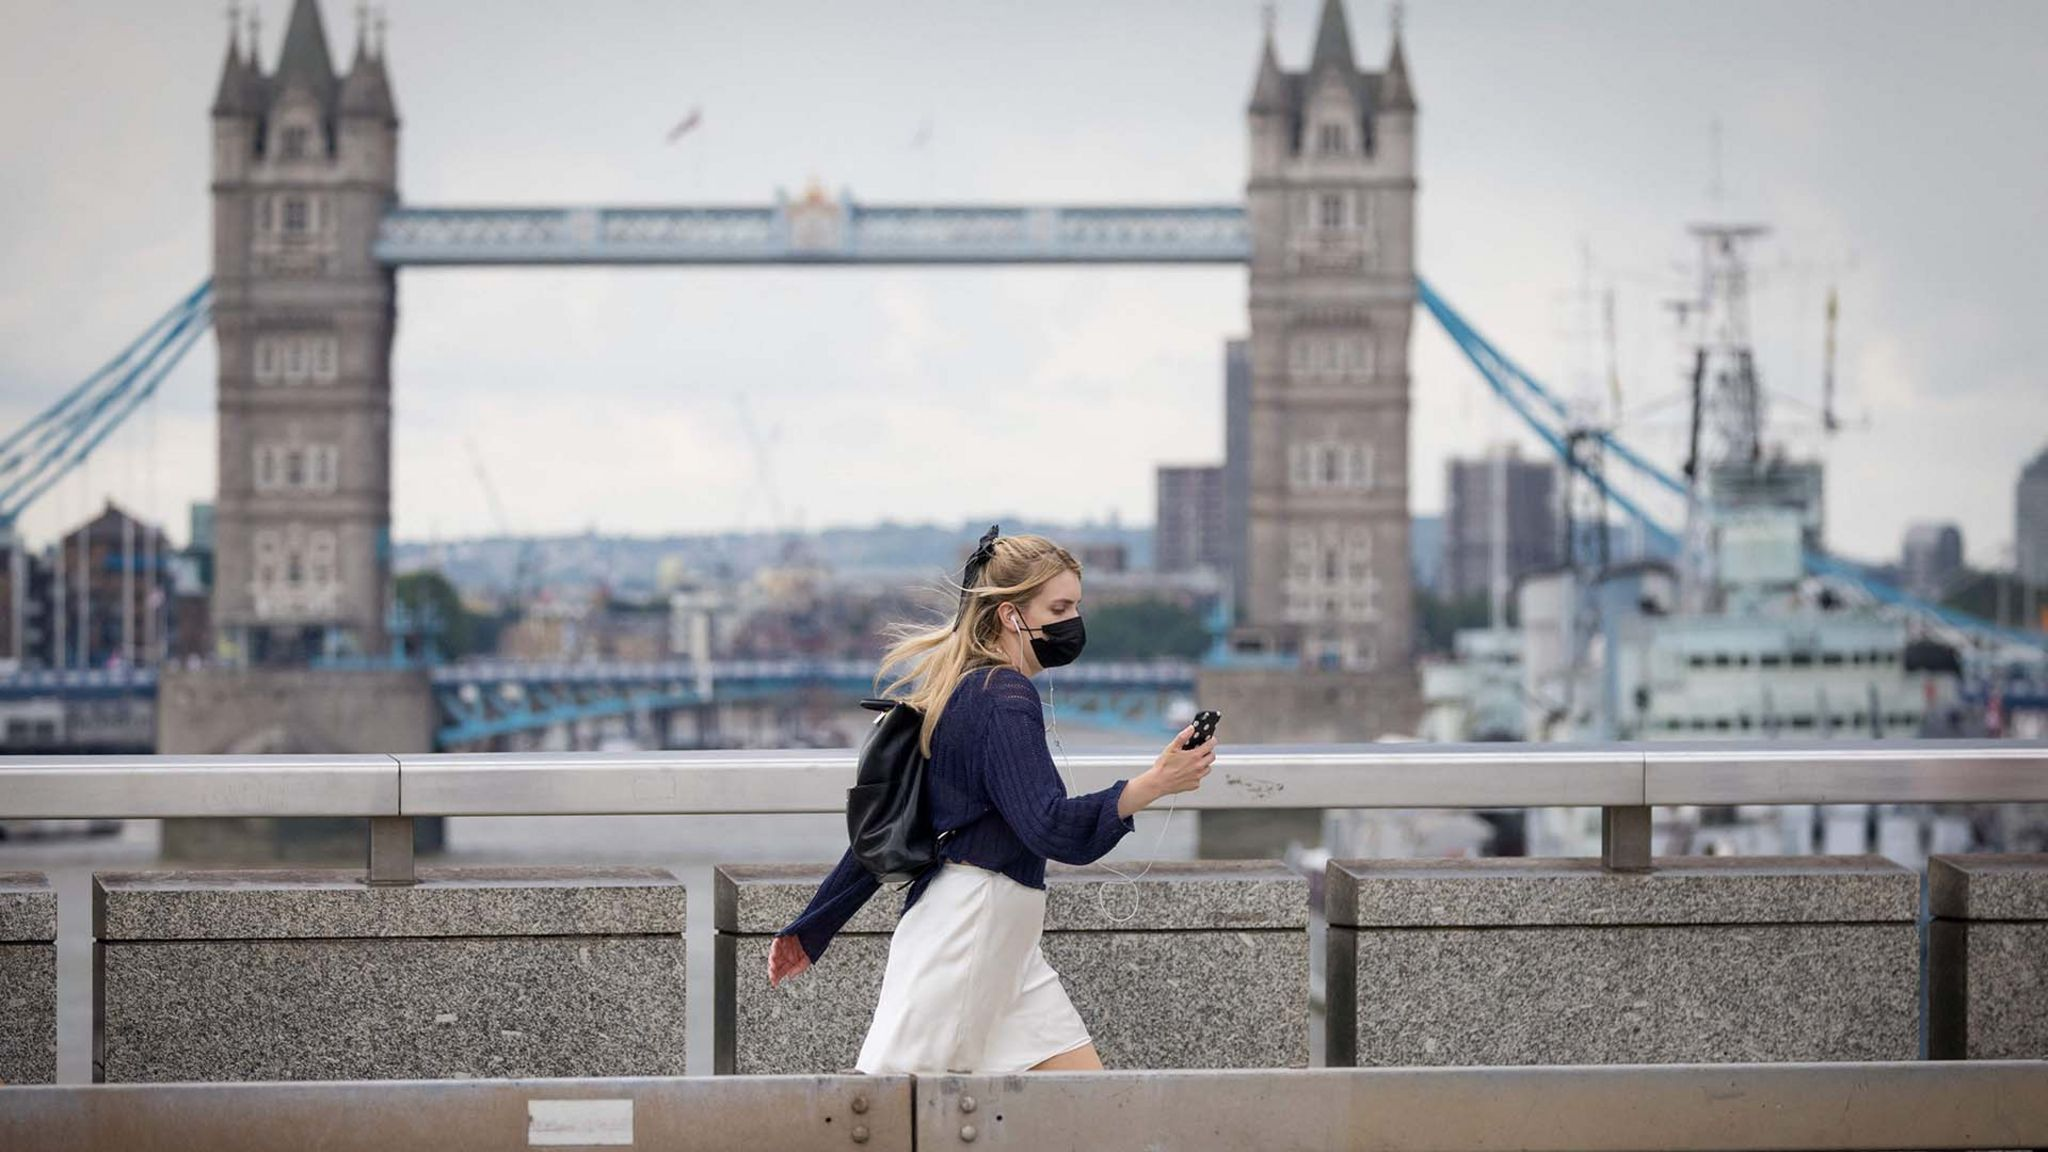 Woman in mask walks across London Bridge, with Tower Bridge and HMS Belfast in the background